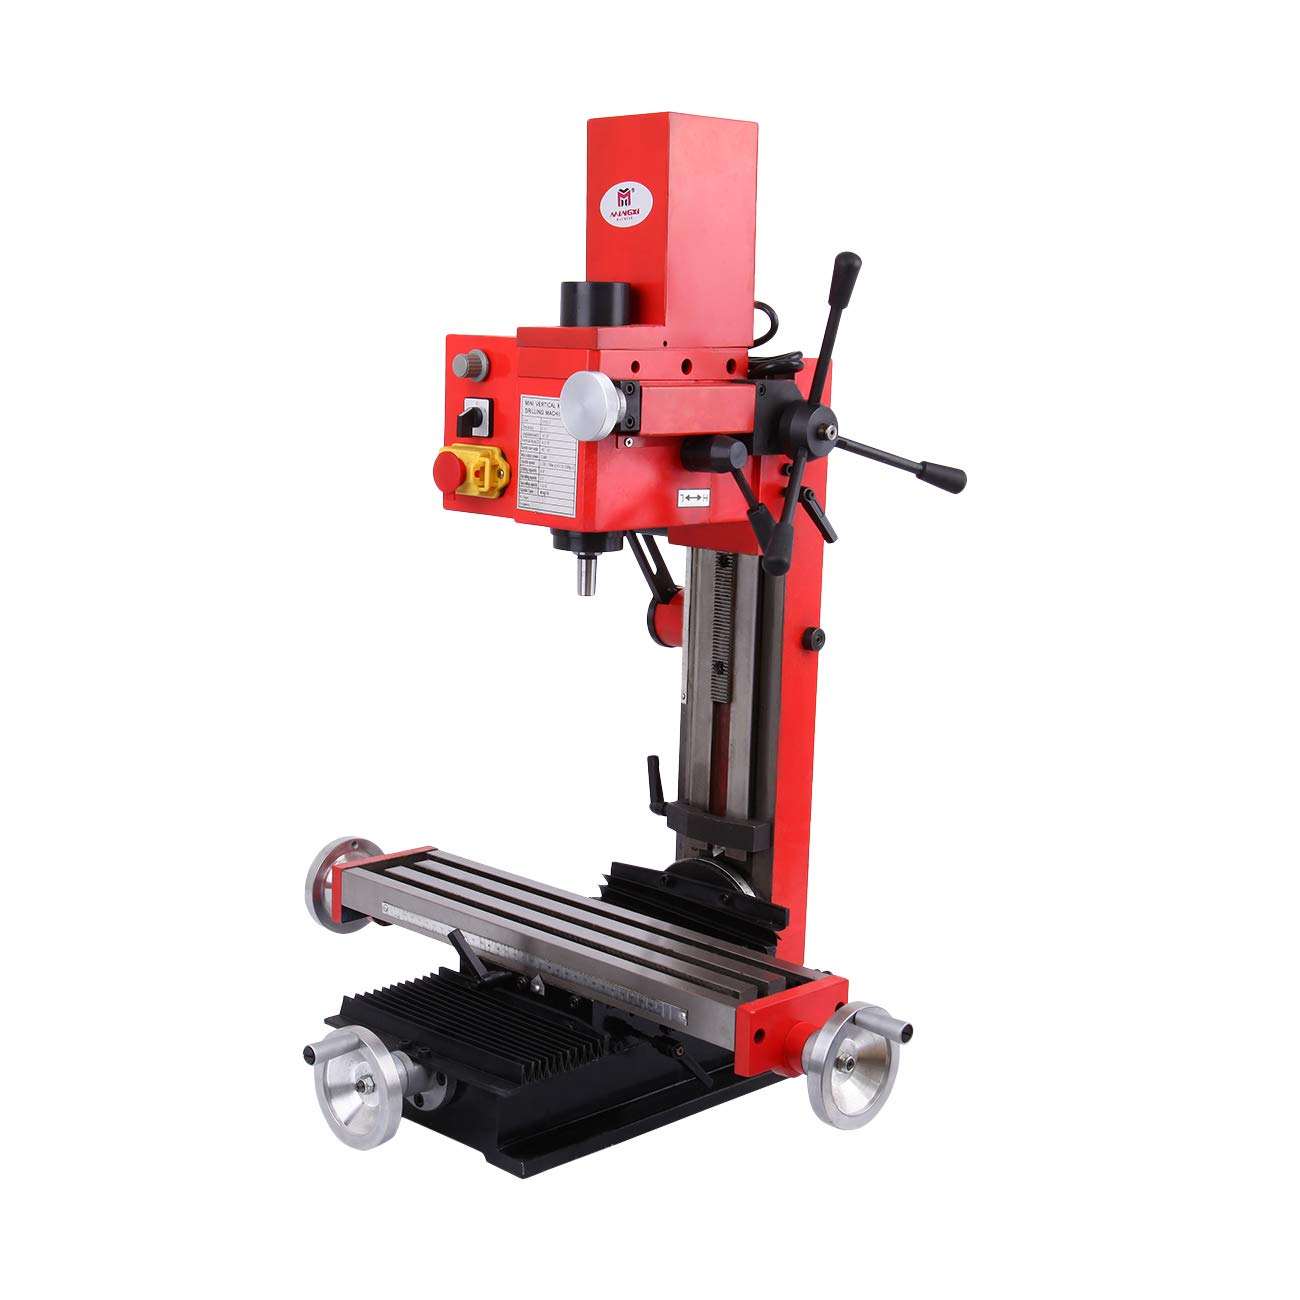 Ambienceo Variable Milling Drilling Emergency